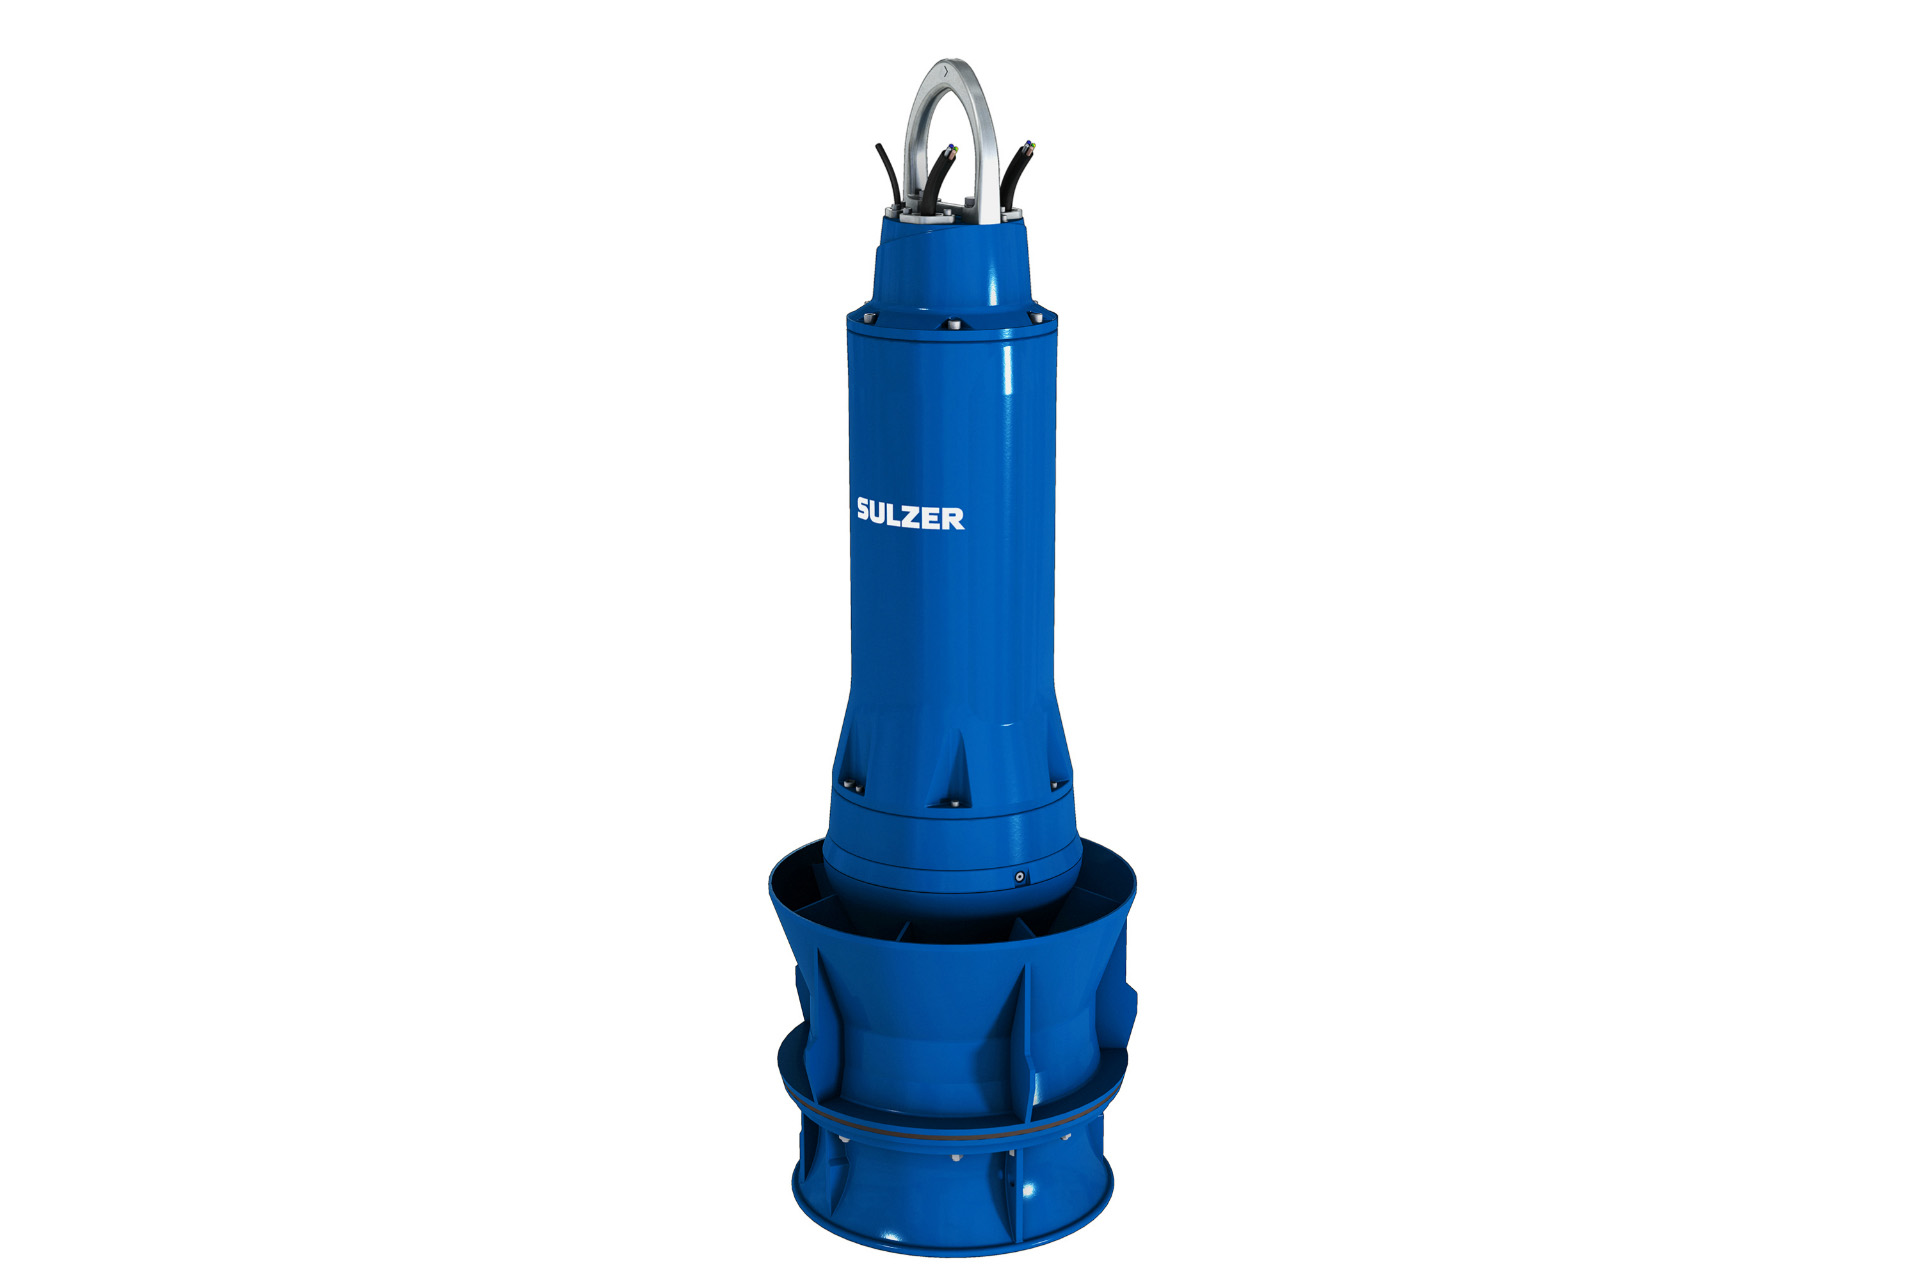 ABS_submersible_propeller_pump_VUP0403